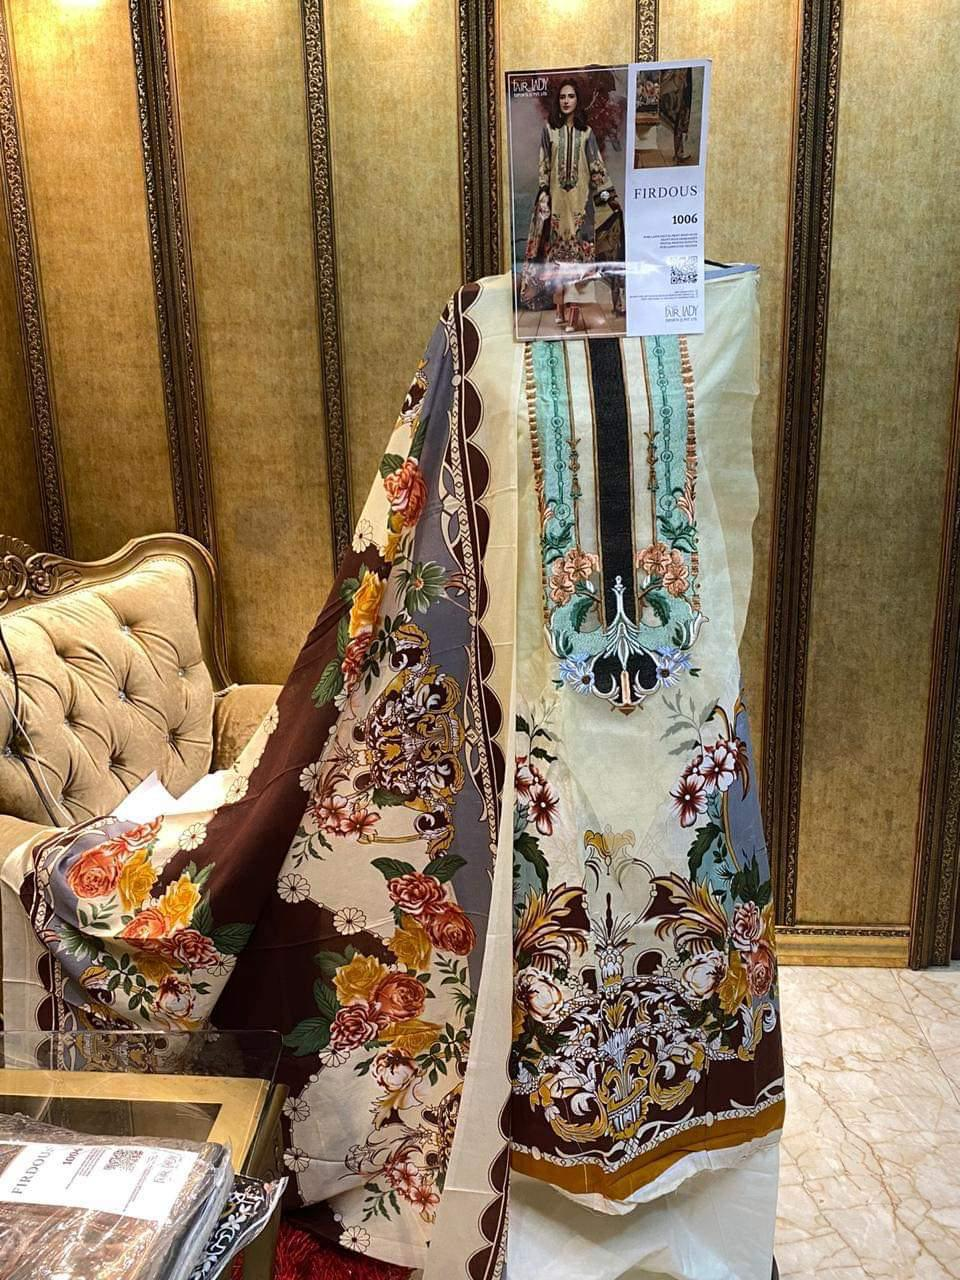 Fair Lady Firdous Designer Lawn Cotton Digital Printed With Embroidery Work Suits Wholesale